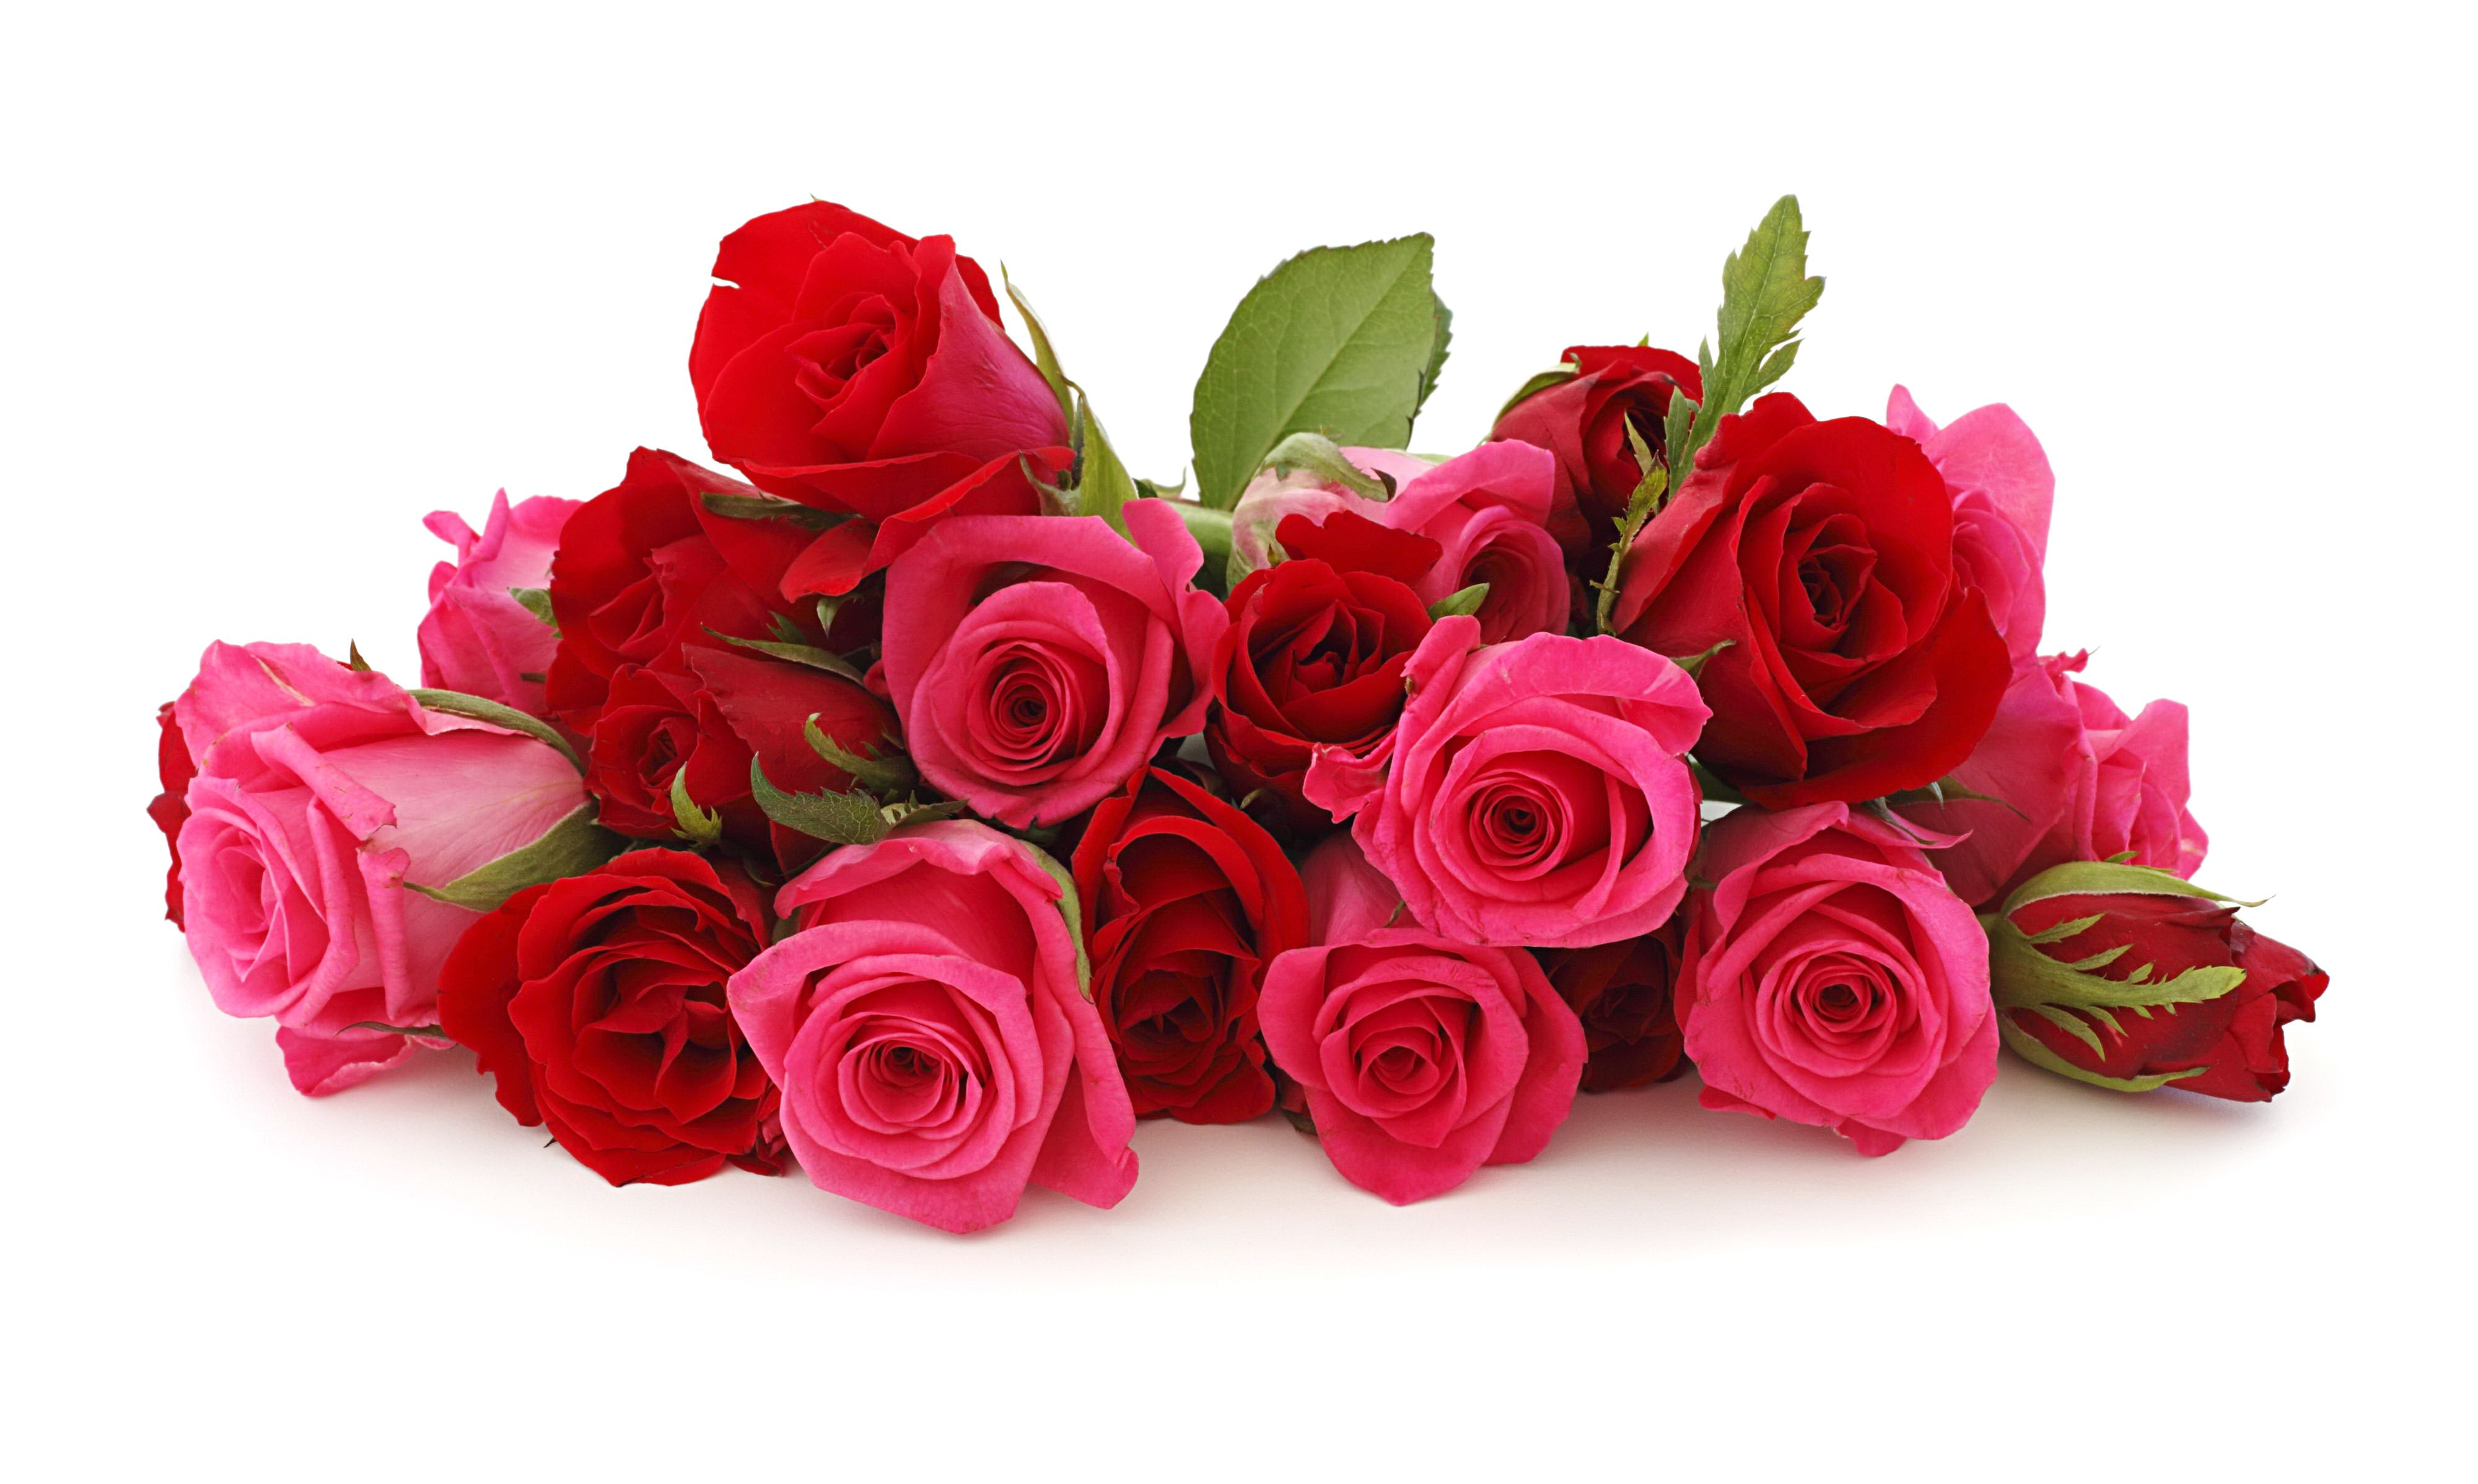 Cute red and pink rose flowers bouquet screensavers for free cute red and pink rose flowers bouquet screensavers for free izmirmasajfo Choice Image